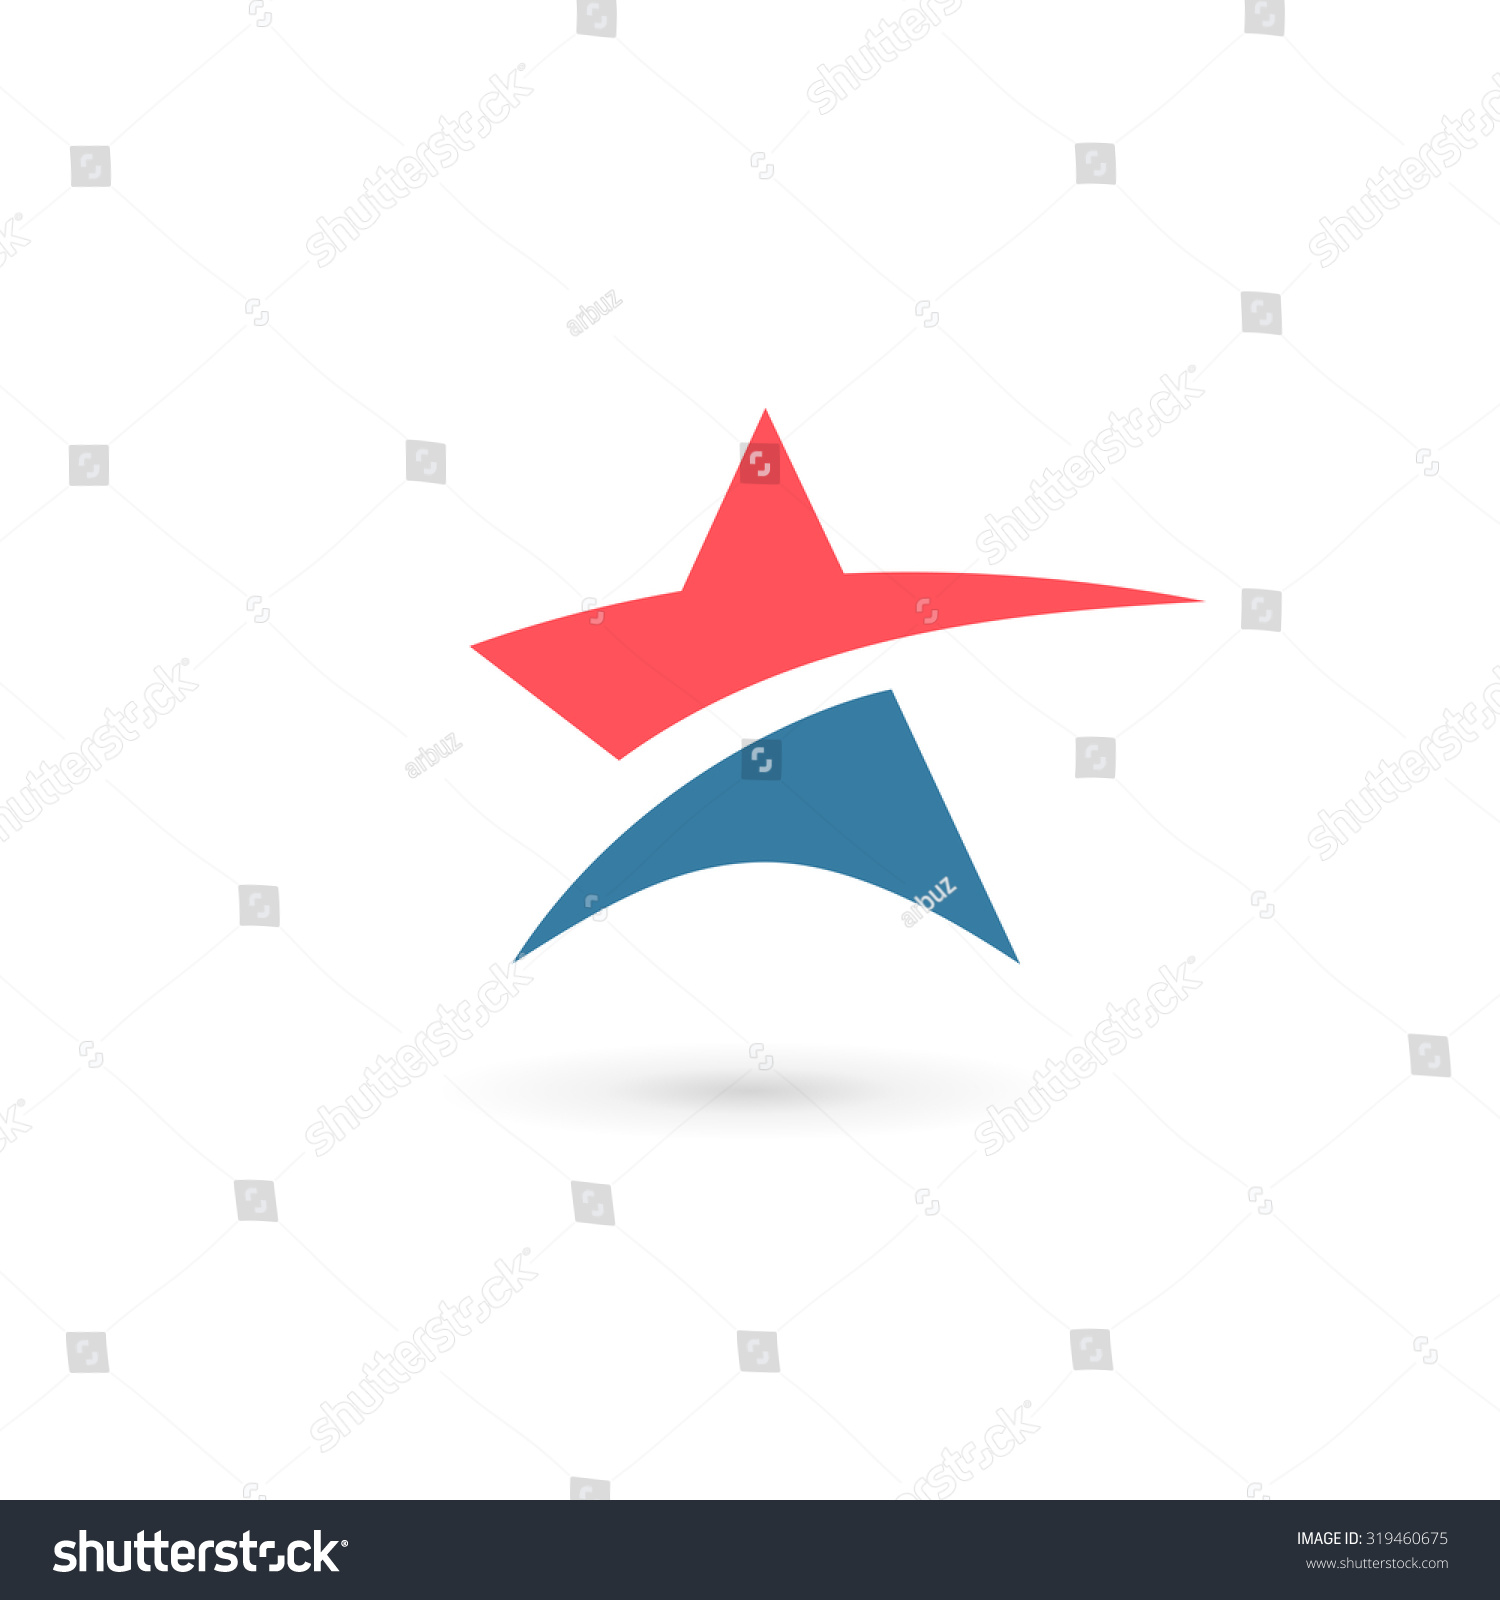 abstract star logo icon design template のベクター画像素材